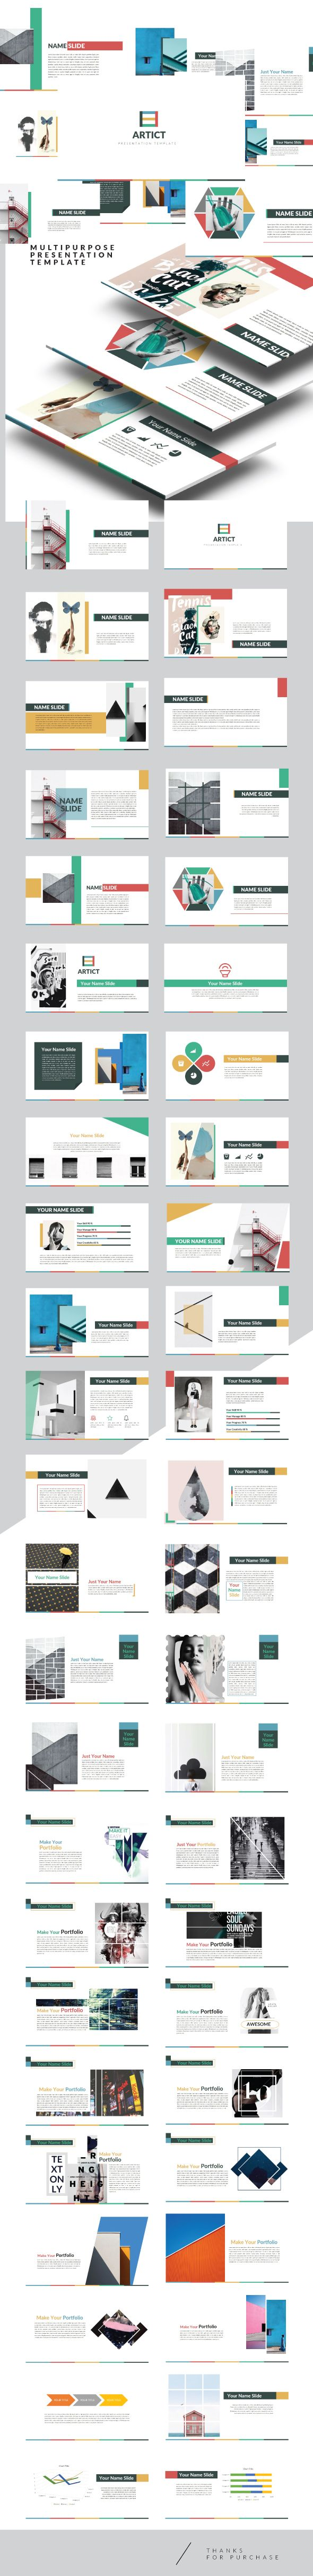 Artic - Multipurpose Powerpoint Creative template - Creative PowerPoint Templates